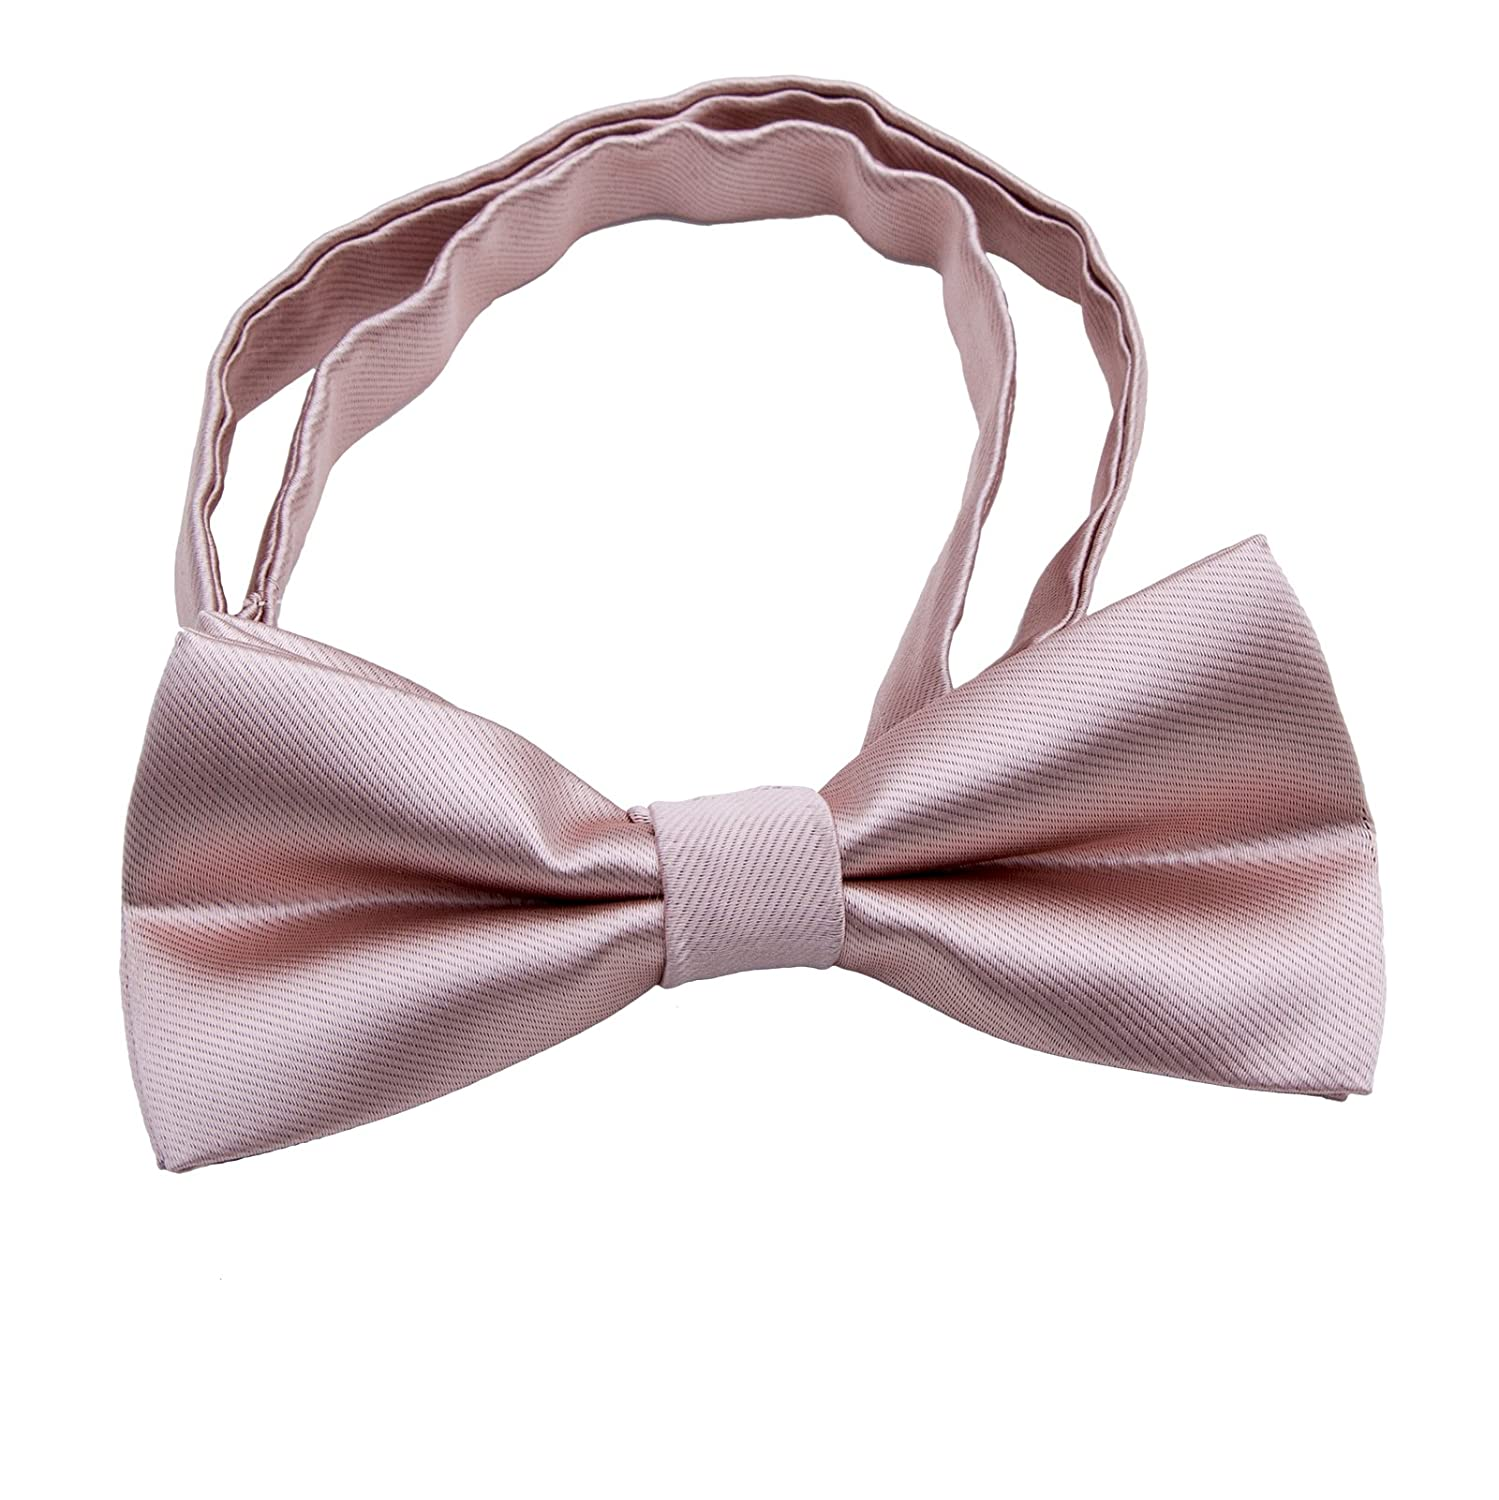 Silk Bow ties for Kids Boys - Adjustable Pre Tied Bowties for Toddler Baby 198705088925